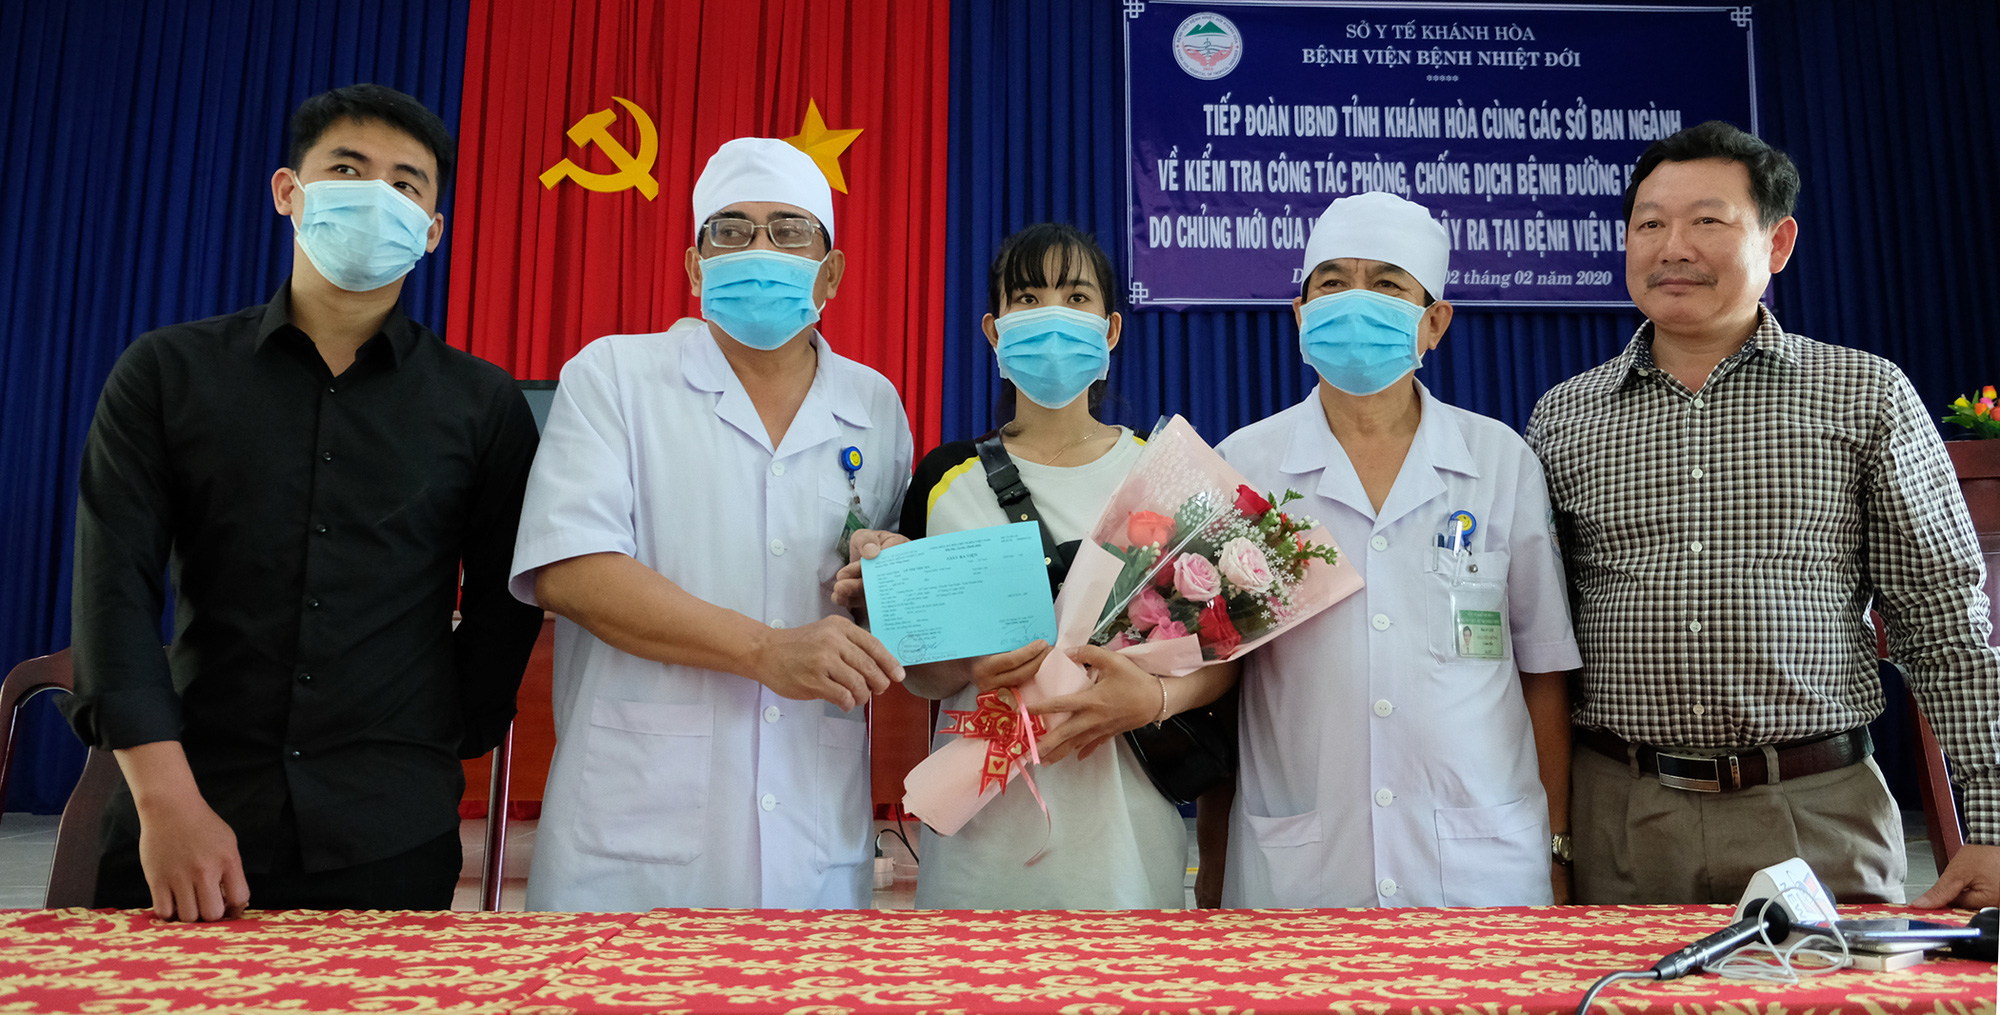 Vietnam's health ministry declares end of COVID-19 epidemic in Khanh Hoa